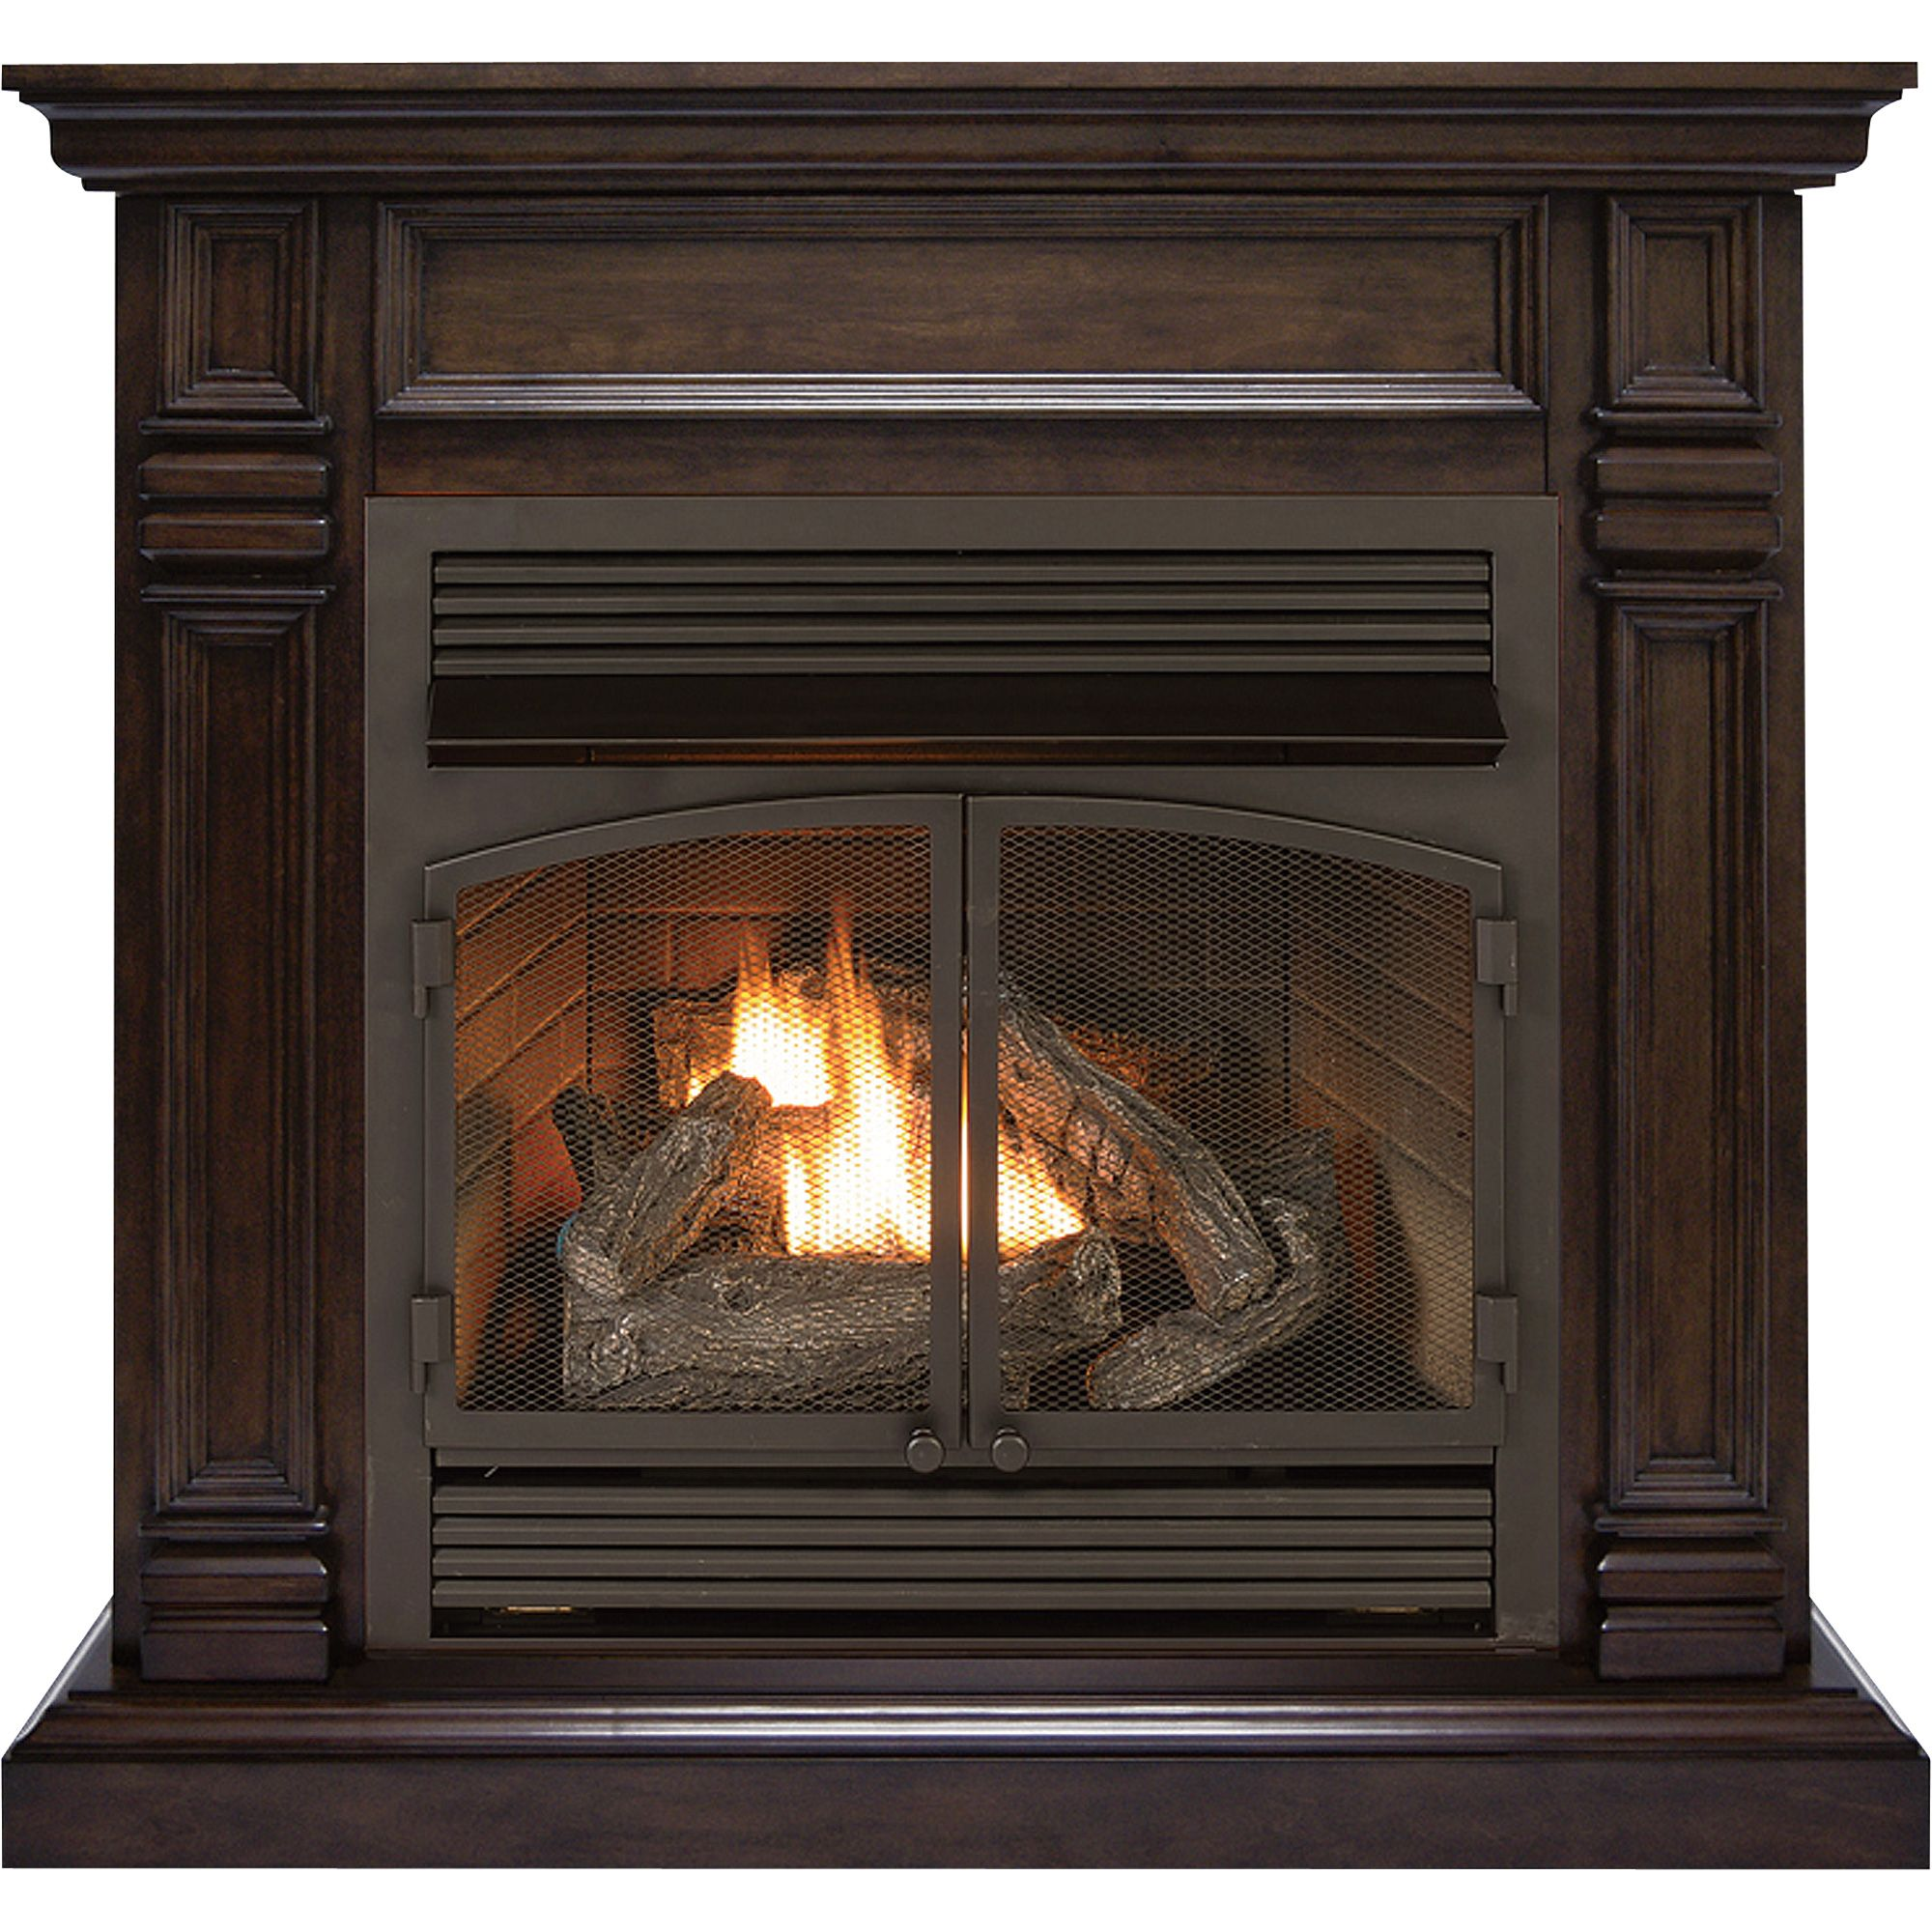 Procom Dual Fuel Vent Free Fireplace 32 000 Btu Chocolate